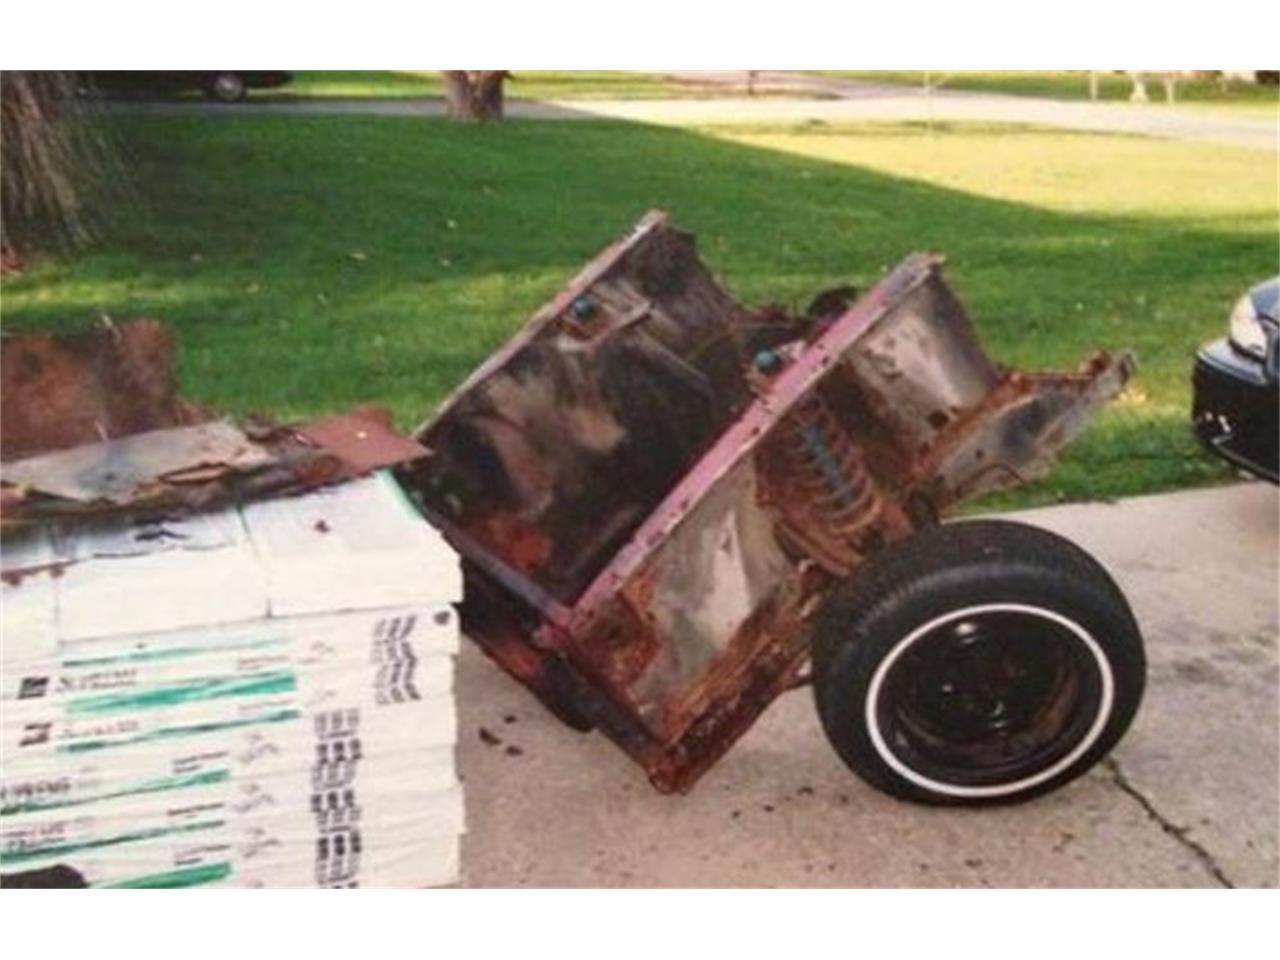 Large Picture of '65 Ford Mustang located in Indiana - $1,000.00 Offered by a Private Seller - I3DL